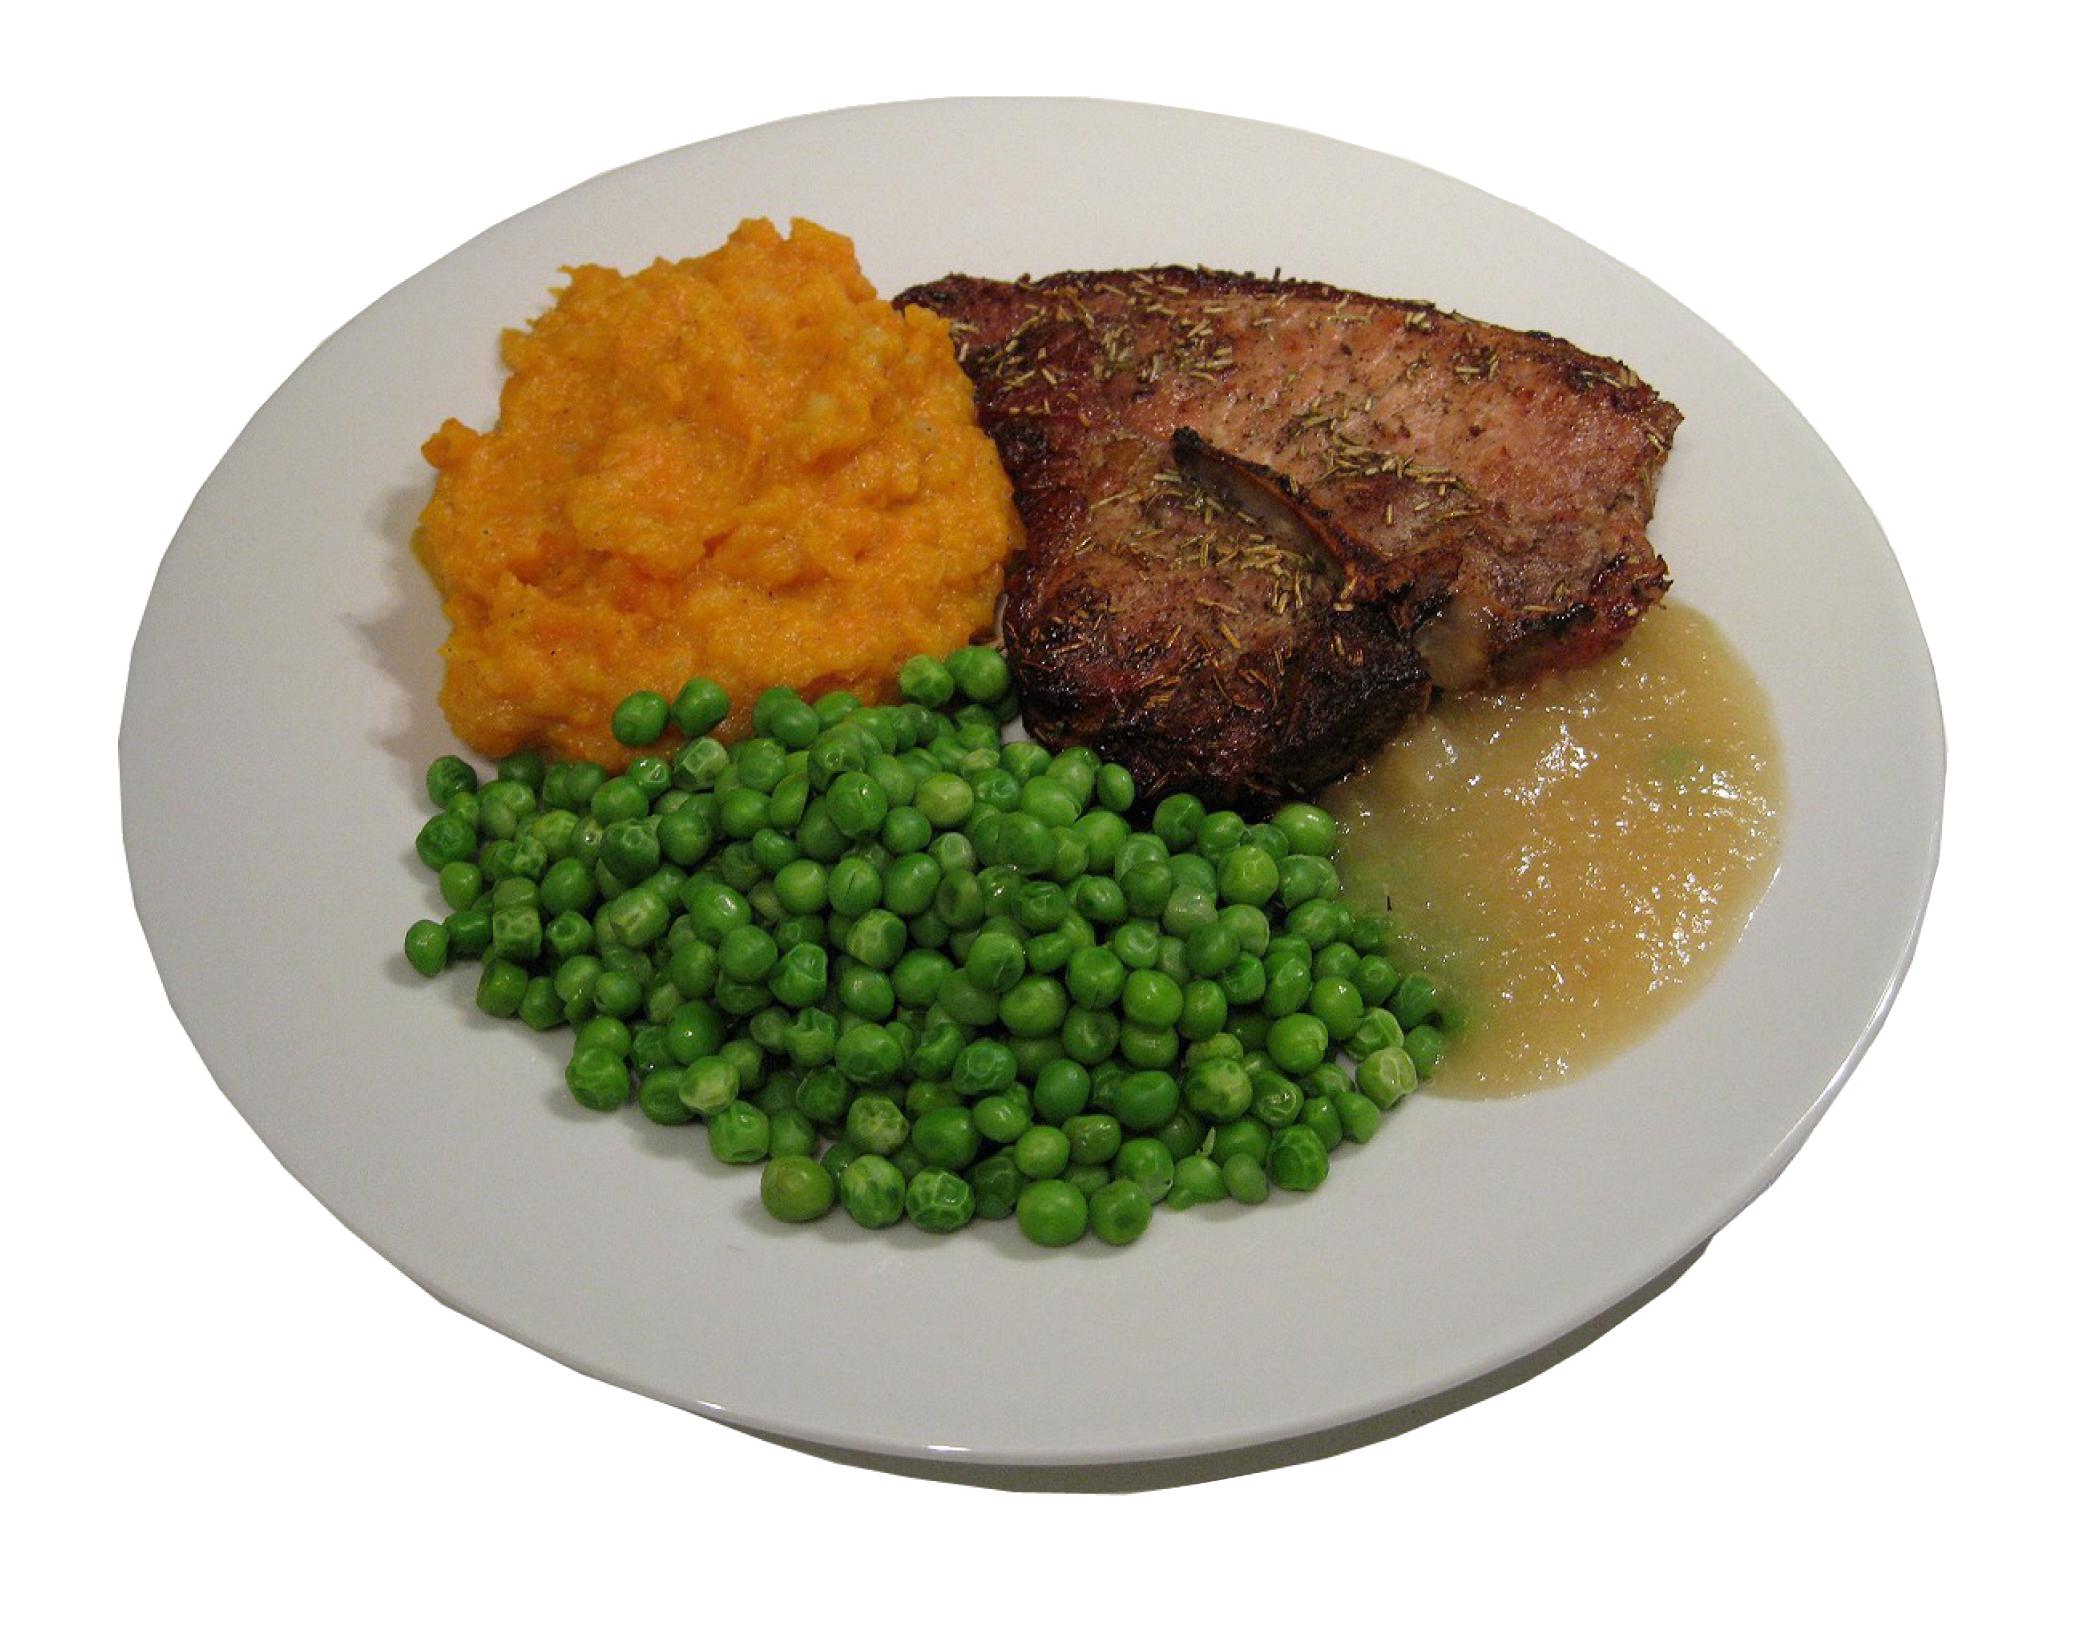 Different ways to cook pork chops - My Design Was Different My Design Was To Prepare Any Number Of The Wonderful Looking Recipes I Have In My Volumes Of Recipe Books